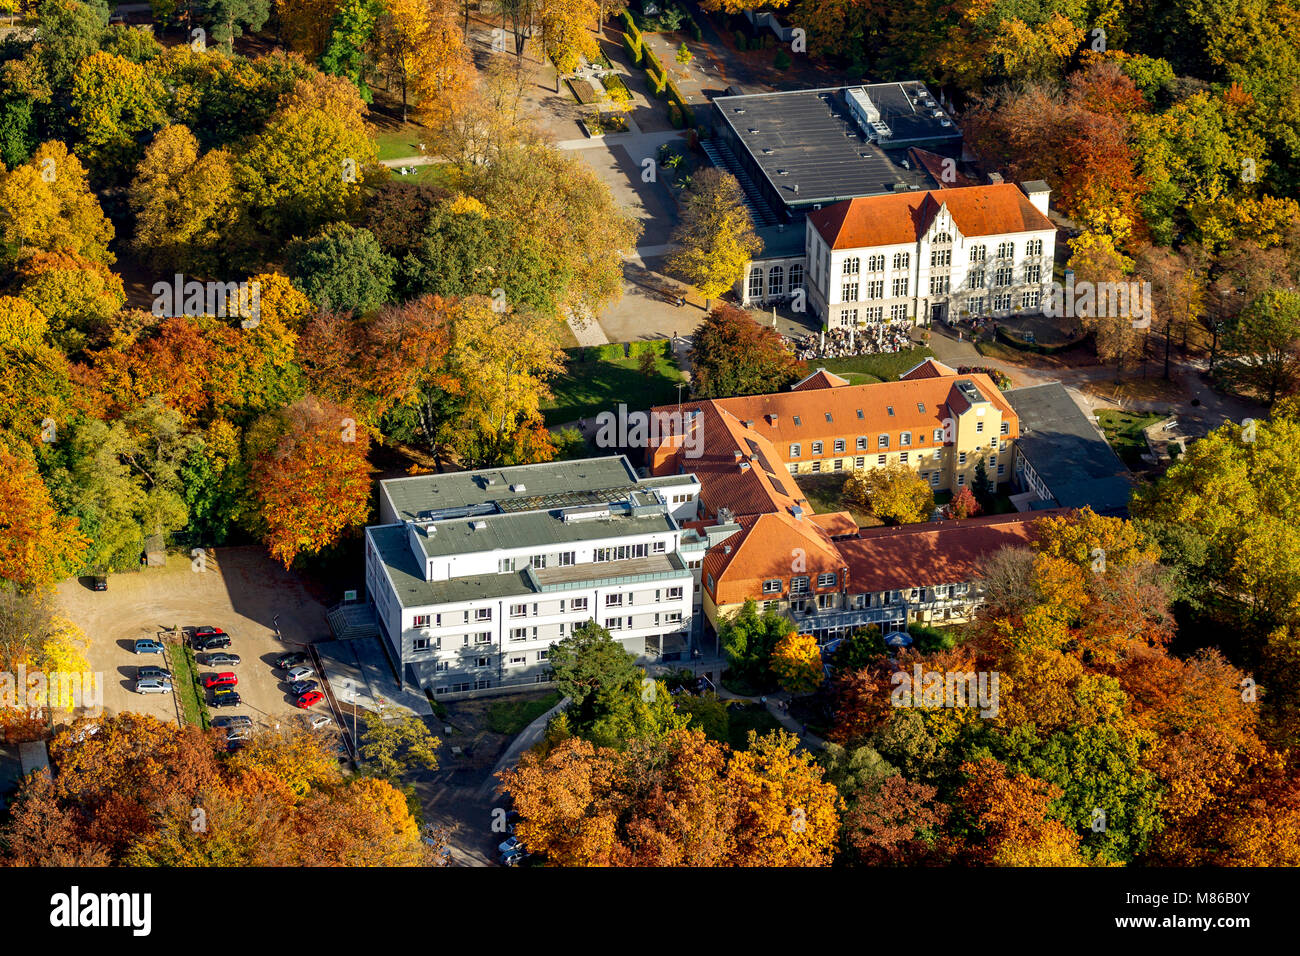 Hamm, manual therapy, Hamm, Ruhrgebiet, North Rhine-Westphalia, Germany, Europe, birds-eyes view, aerial view, aerial - Stock Image